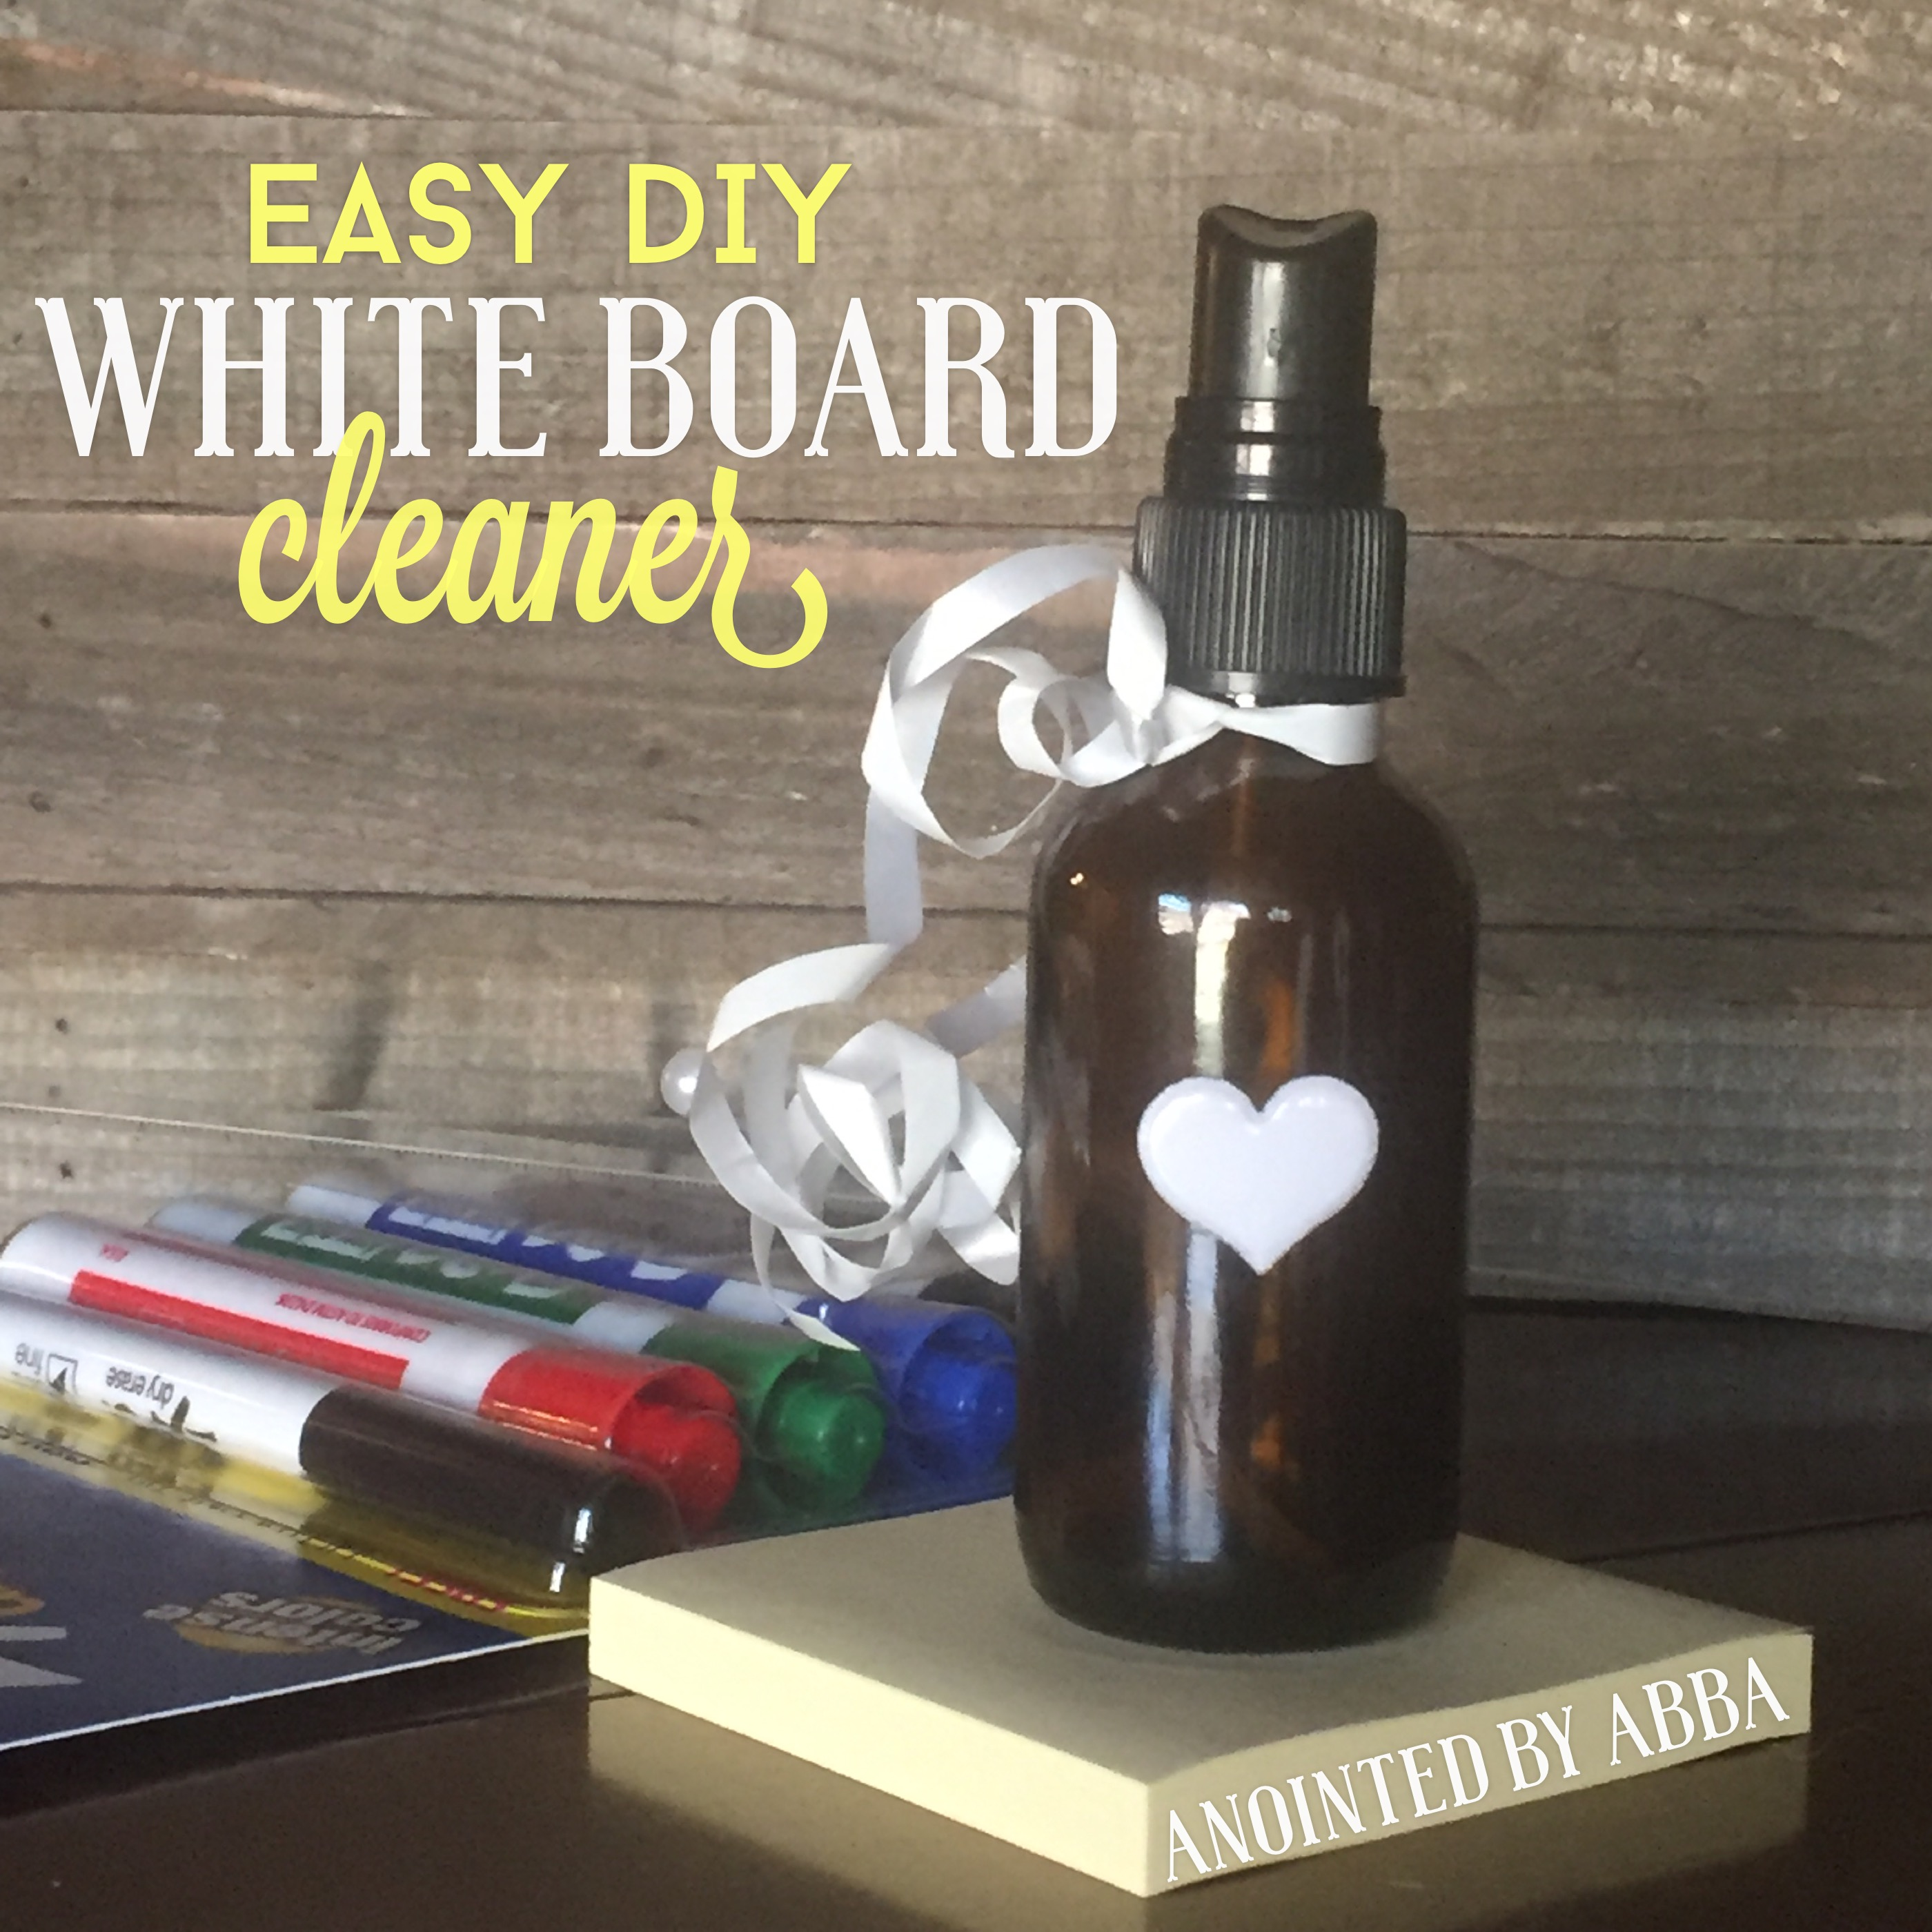 DIY Non toxic Whiteboard Cleaner